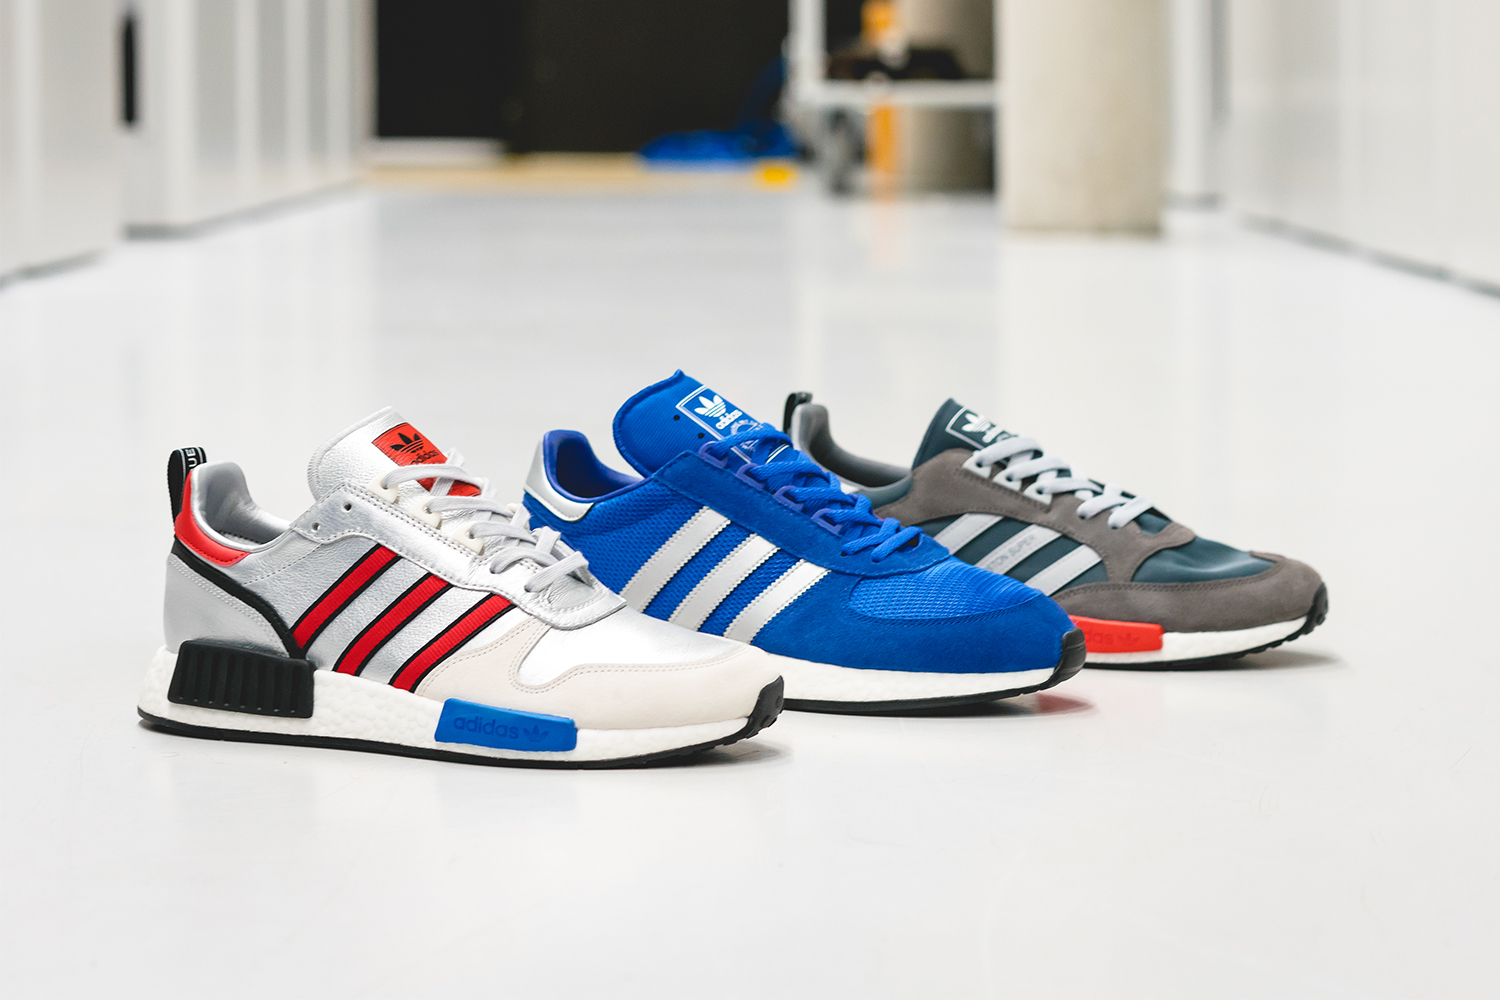 e2a410c4c341 adidas Originals 'Never Made' Pack - size? blog